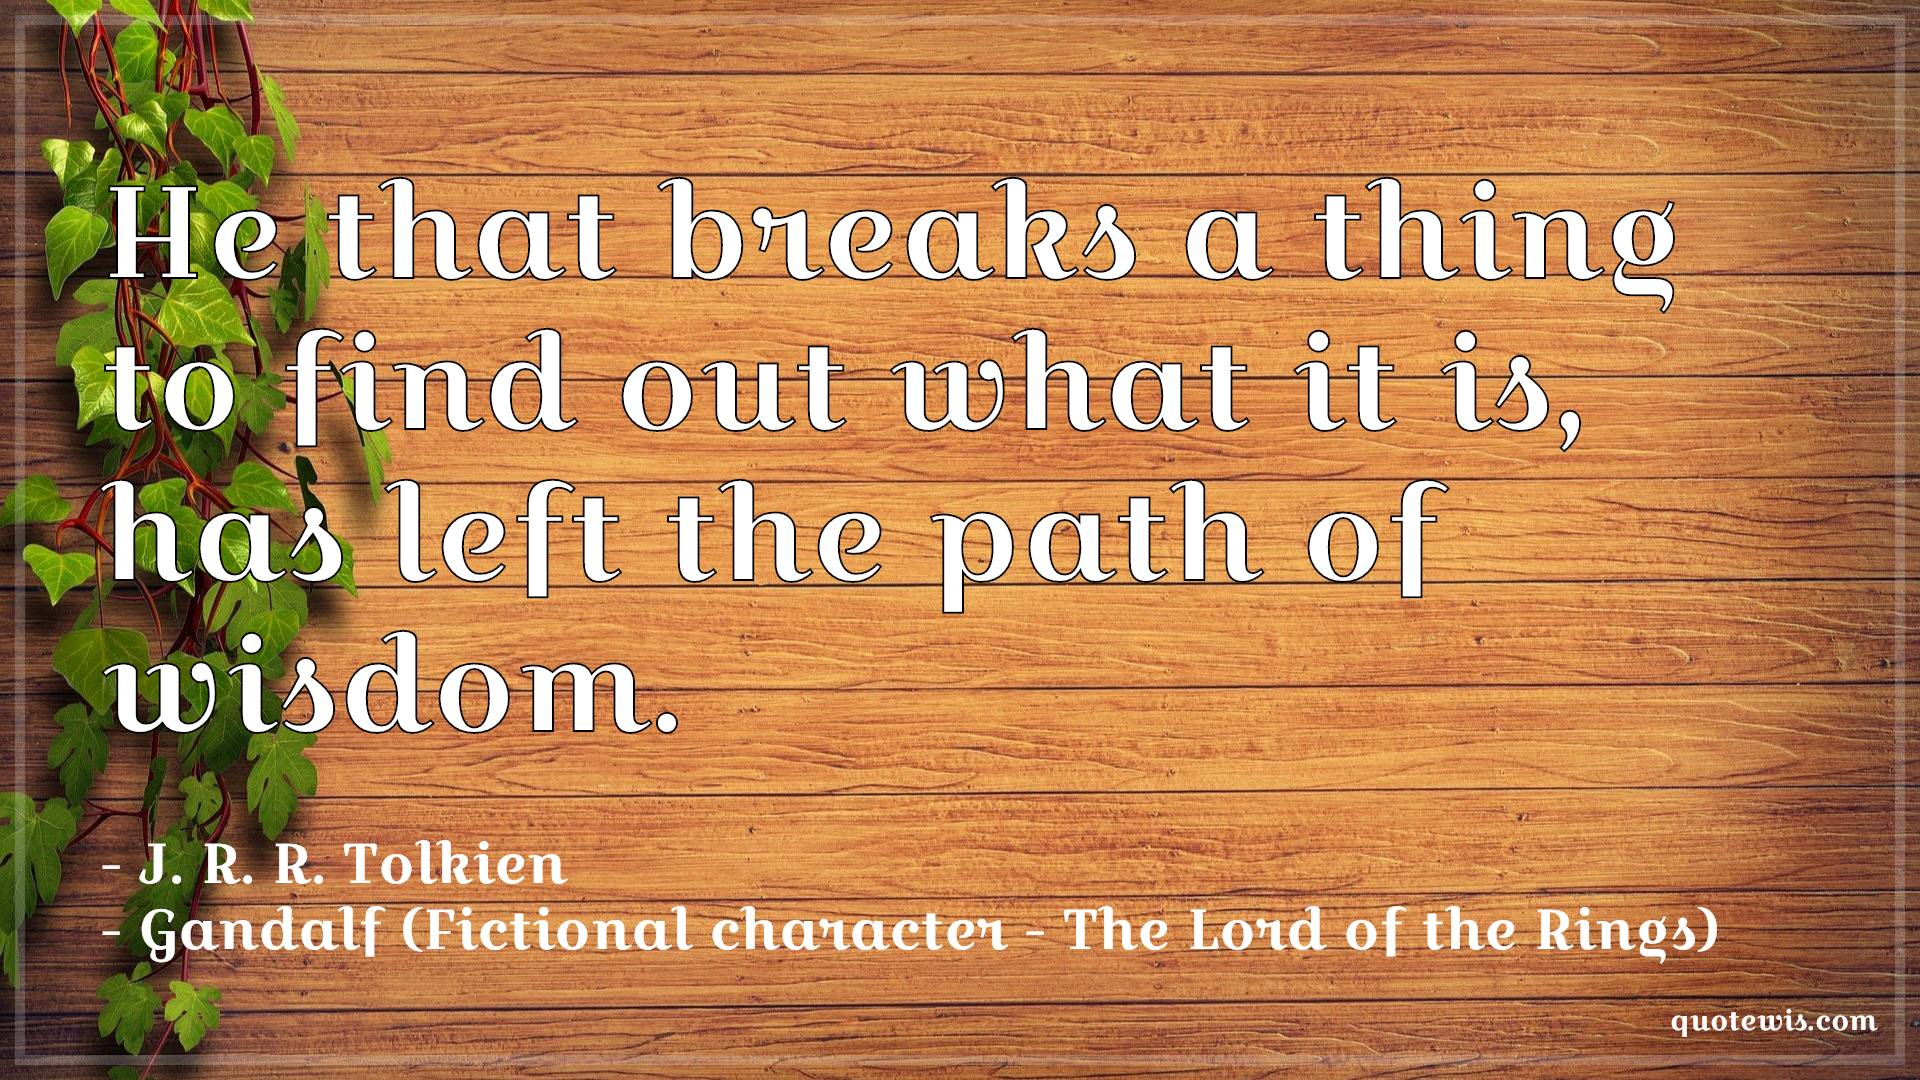 He that breaks a thing to find out what it is, has left the path of wisdom.